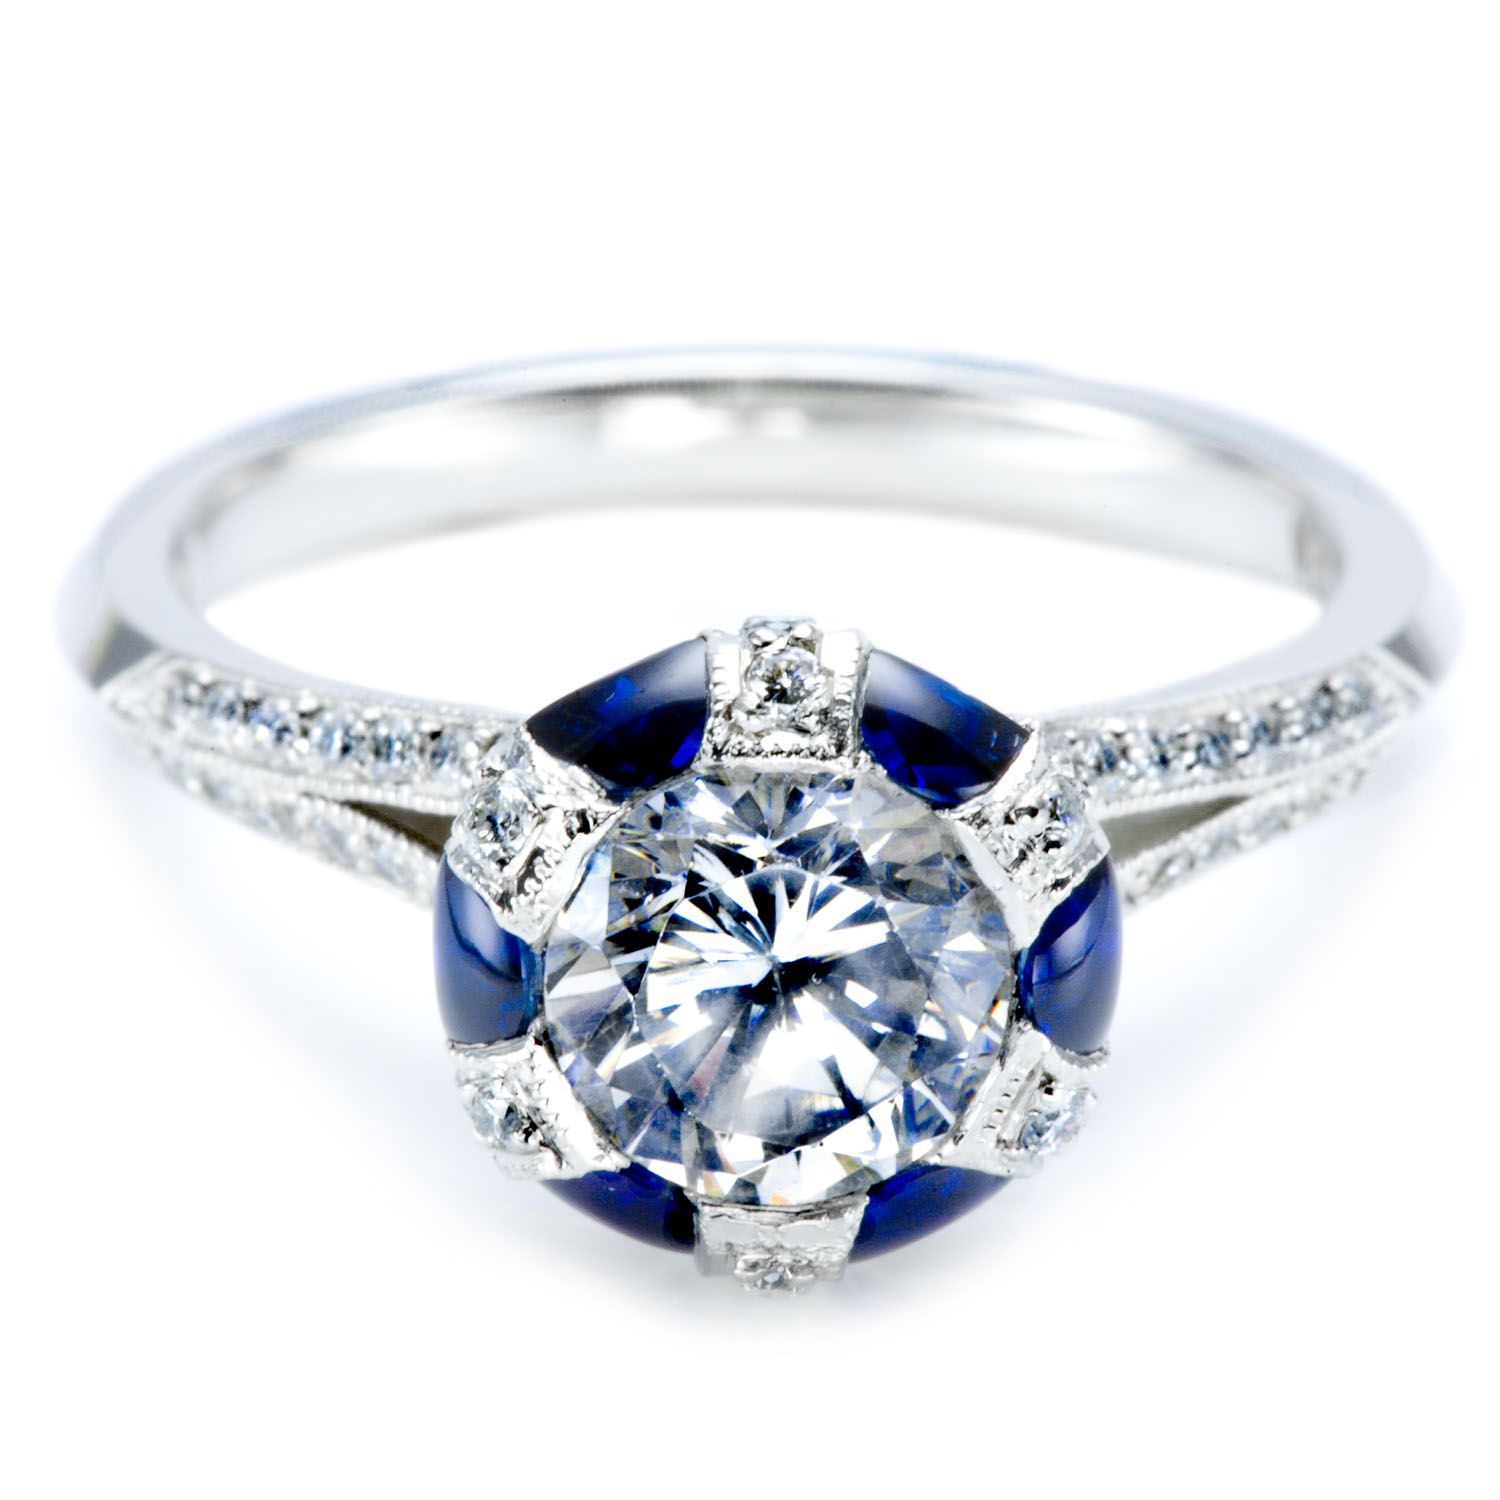 Tacori Engagement Ring 2518 RD 6 5 Sapphires and diamonds oooh my